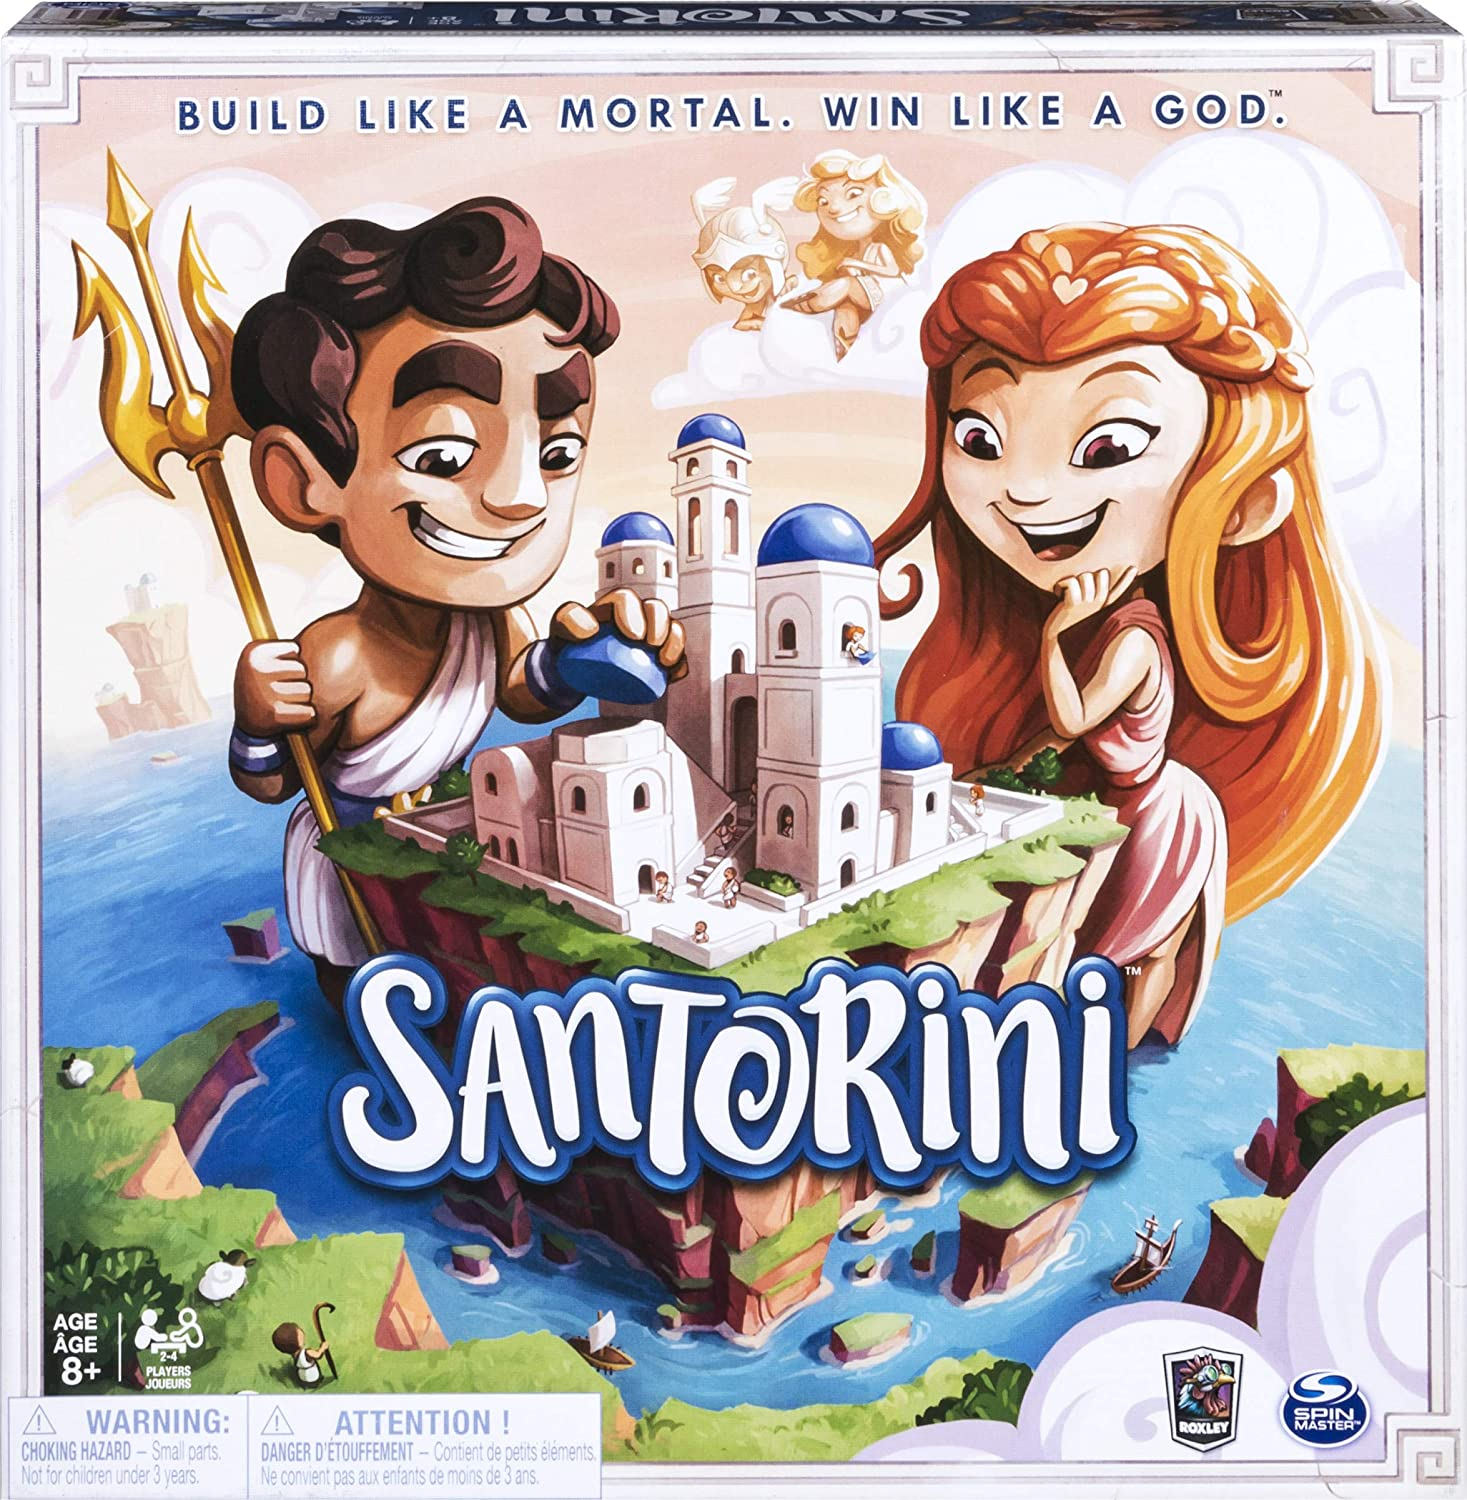 Amazon Com Spin Master Games Santorini Strategy Based Family Board Game For Kids Adults Ages 8 Up To 6 Players Toys Games